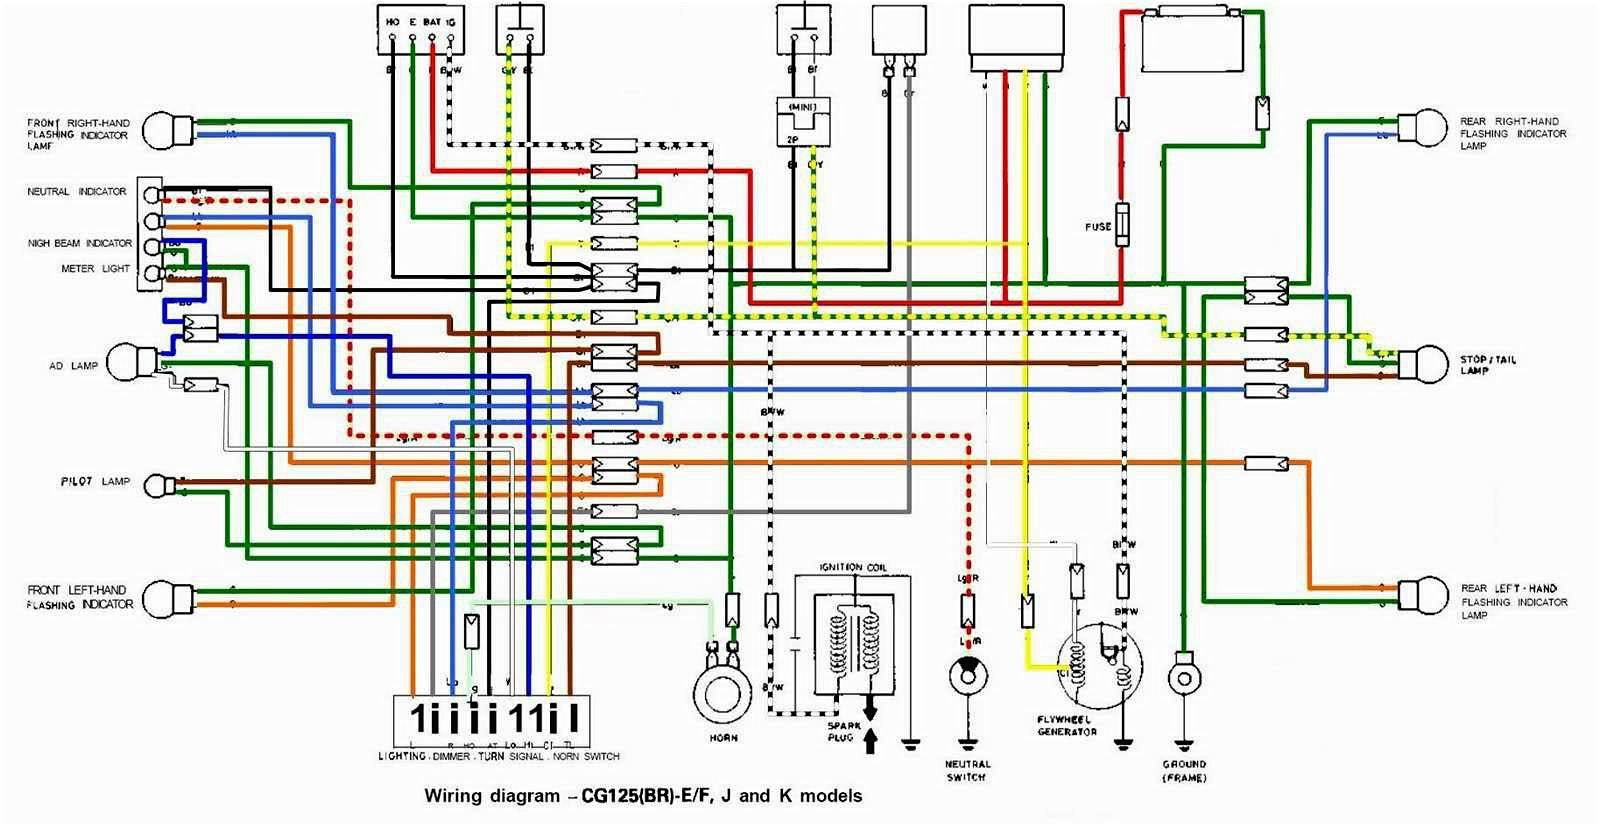 NW_4058] Lifan Wiring Diagram Moreover Lifan Wiring Diagram Further 4 Wire  Cdi Download DiagramVira Effl Cajos Vira Mohammedshrine Librar Wiring 101